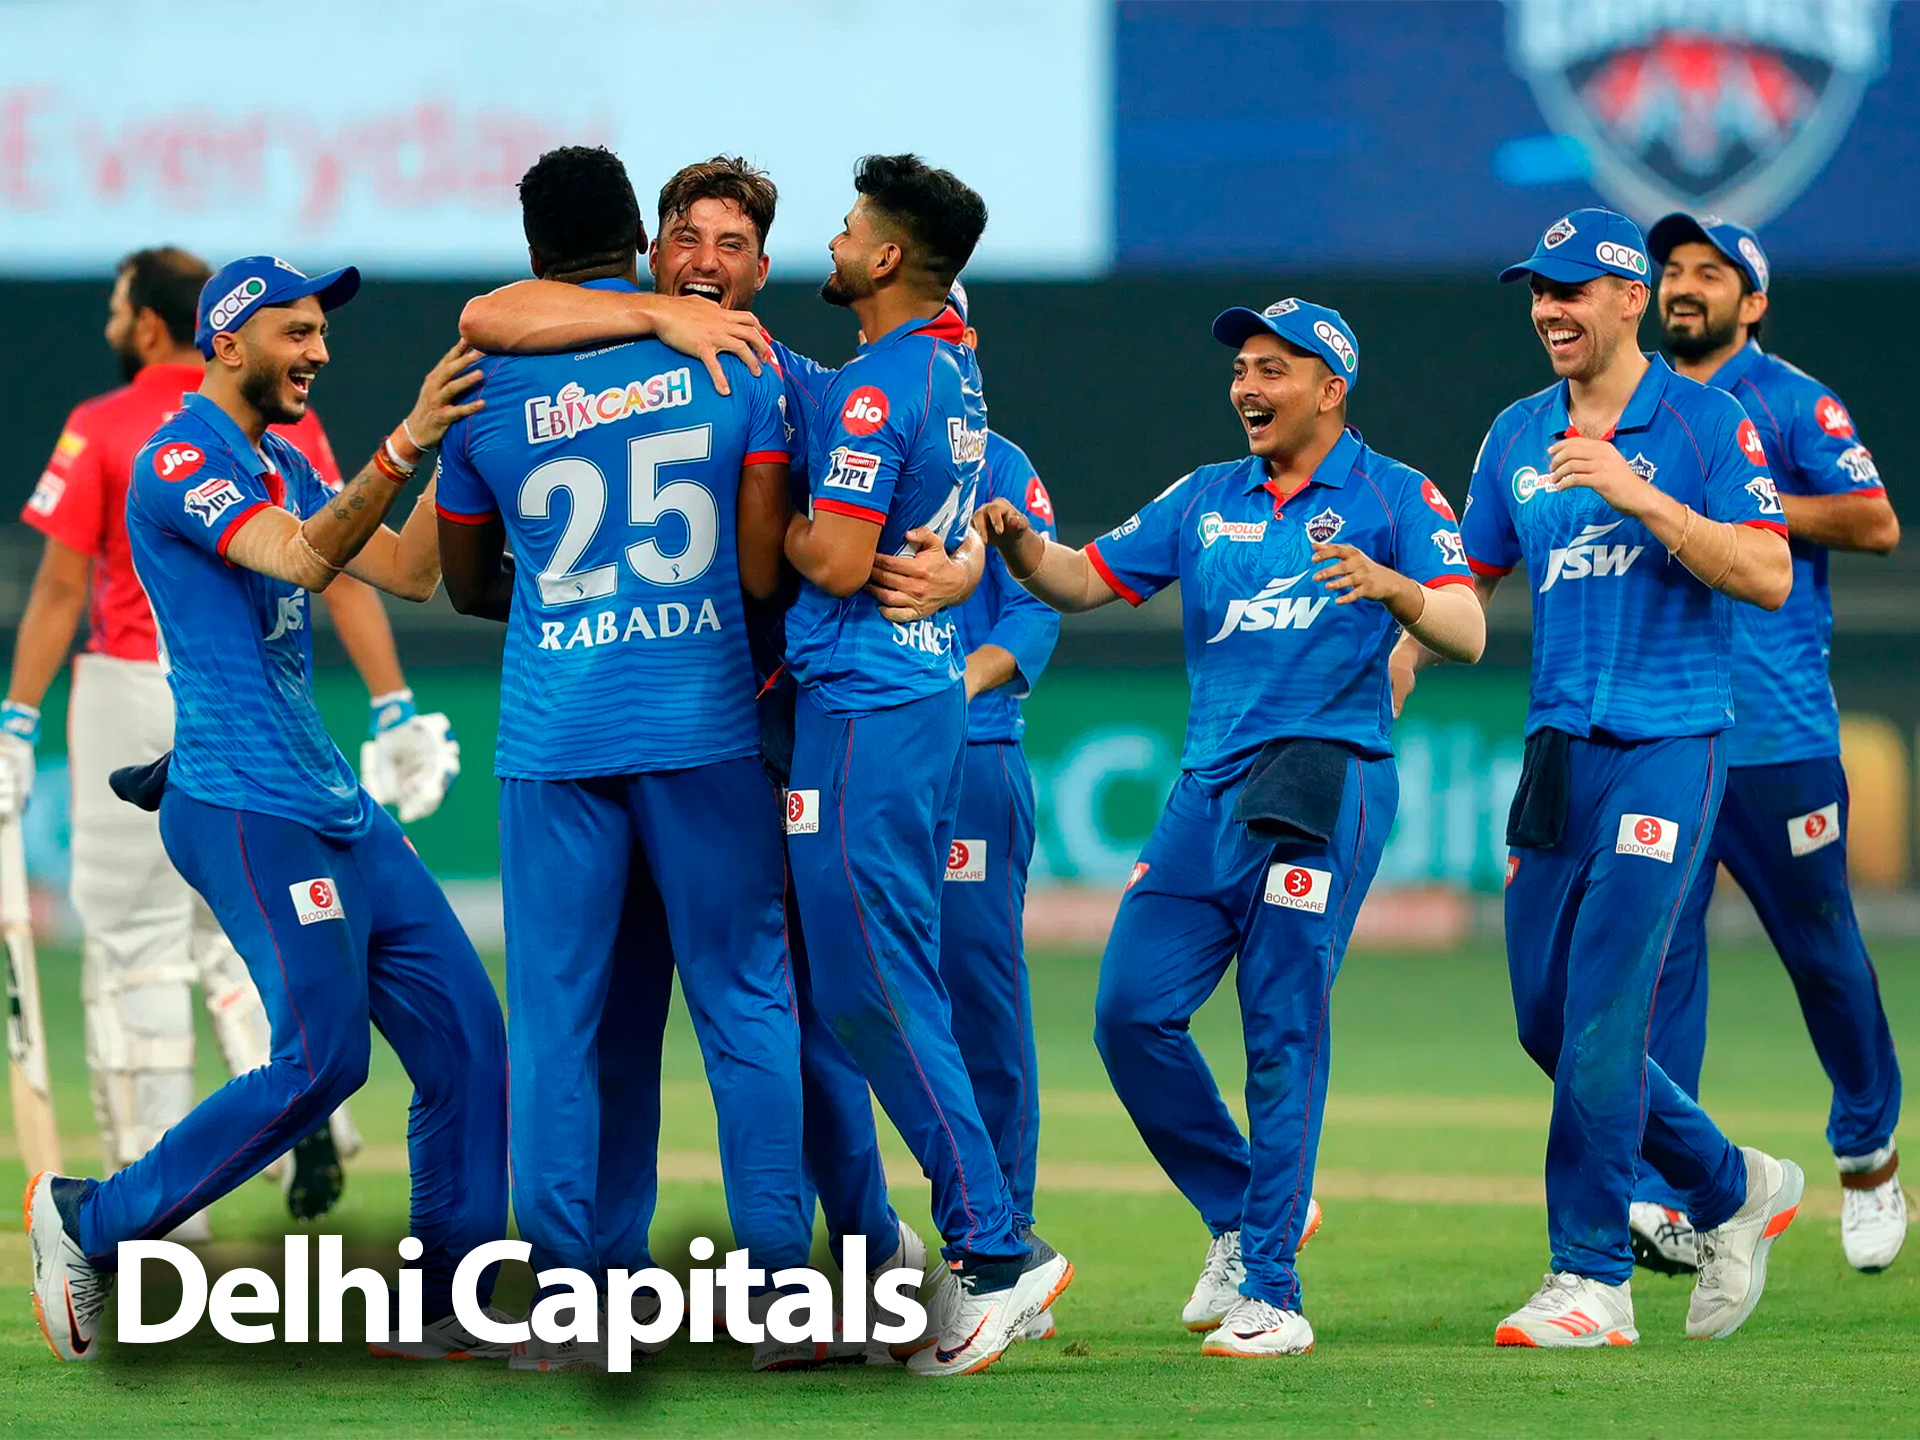 High odds will let you win a lot of money from this IPL team.